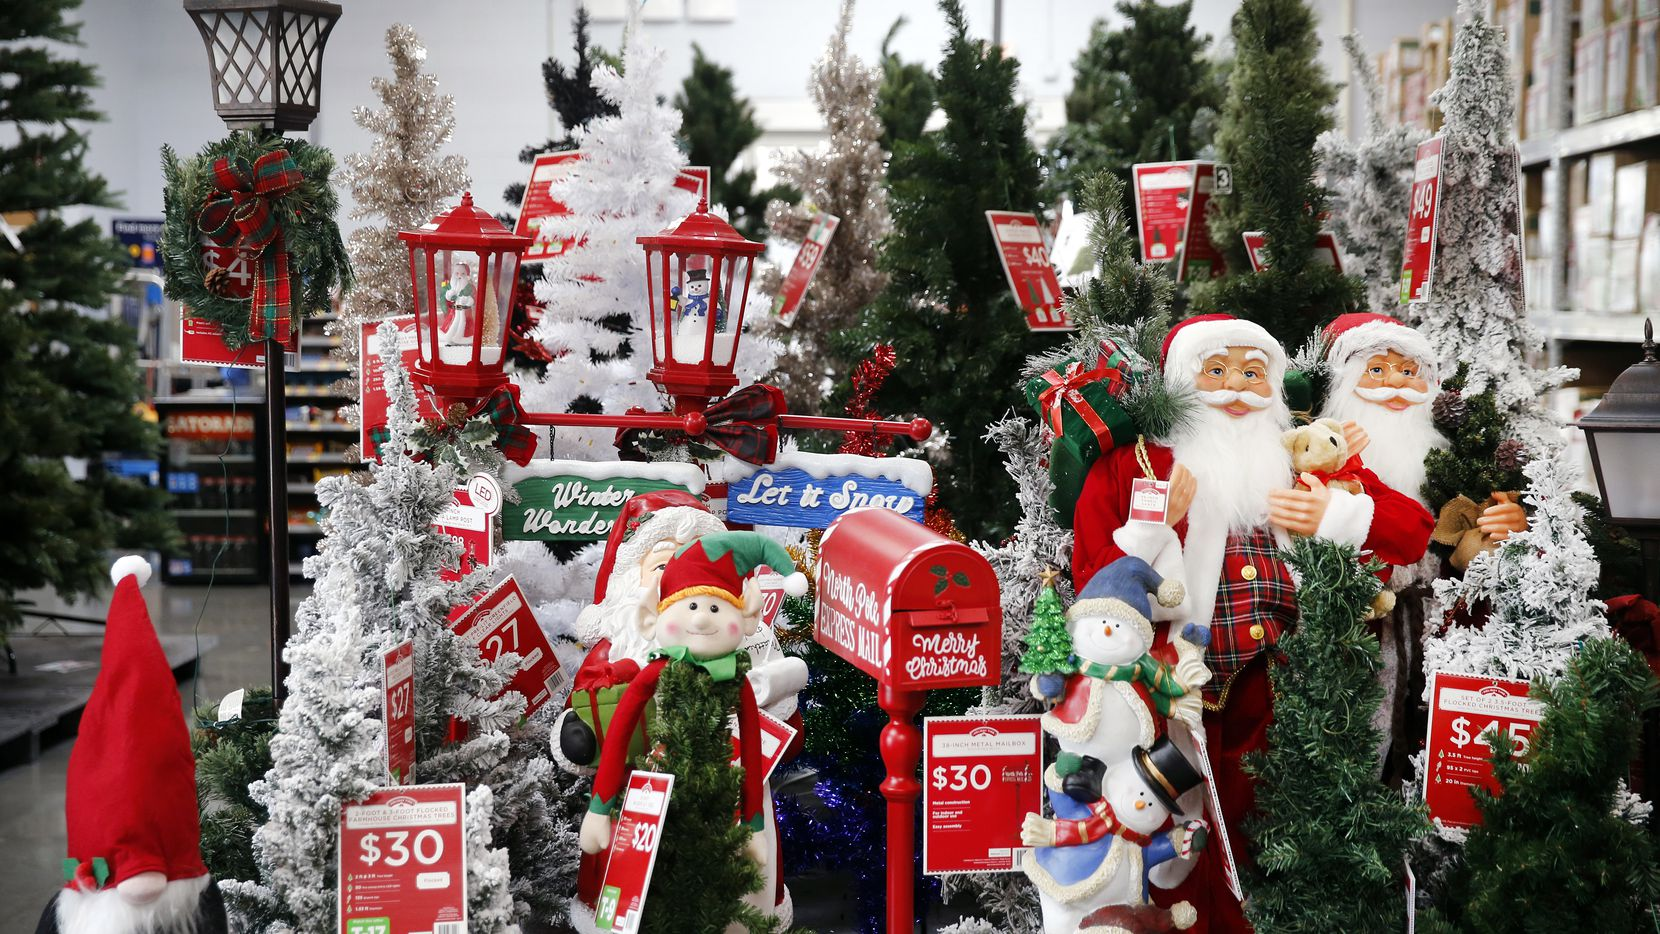 Christmas yard decorations and artificial trees fill the Walmart Supercenter on Lyndon B Johnson Freeway in Dallas, Thursday, October 29, 2020. (Tom Fox/The Dallas Morning News)